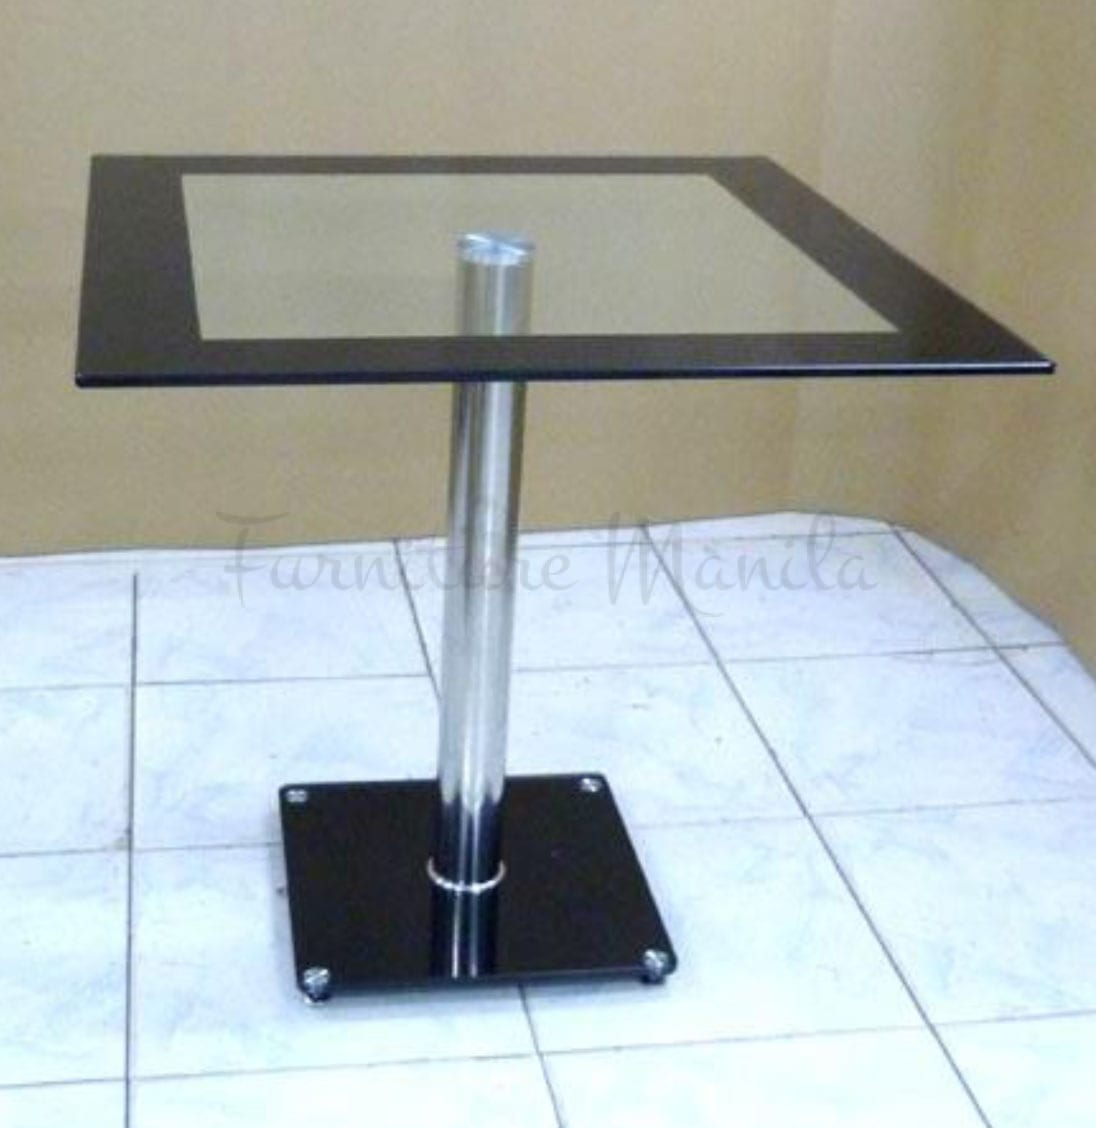 580 Square Table Glass Home amp Office Furniture Philippines : 580 square table glass  from www.furnituremanila.com.ph size 1096 x 1128 jpeg 273kB